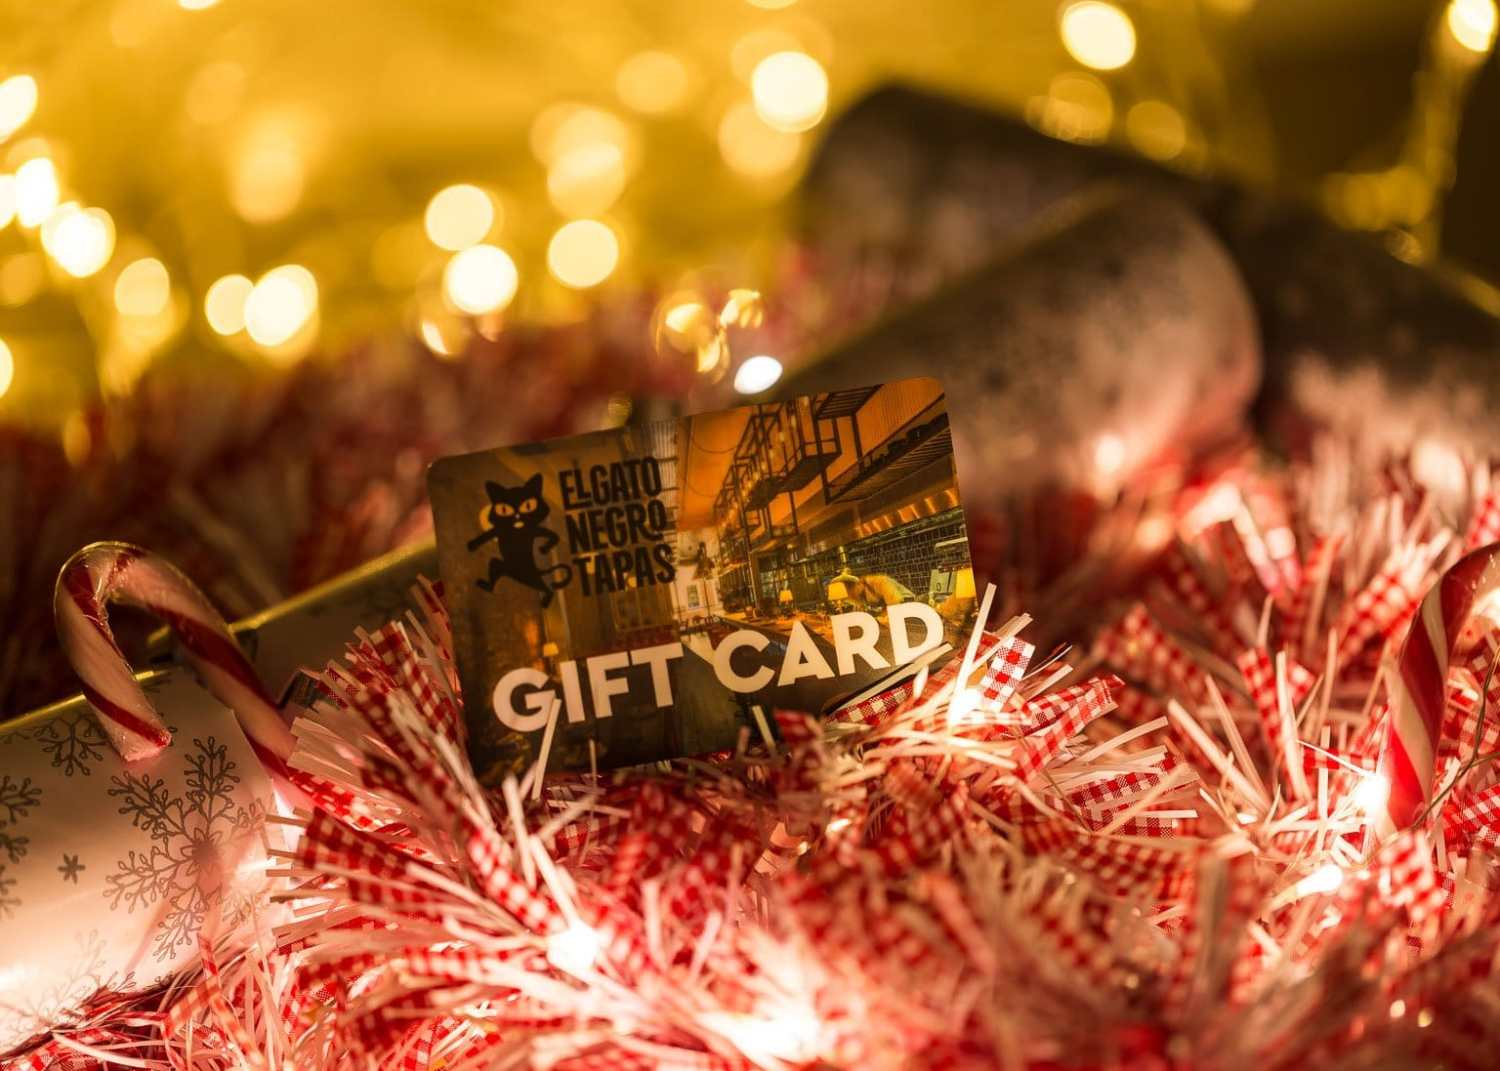 Christmas gift cards at El Gato Negro